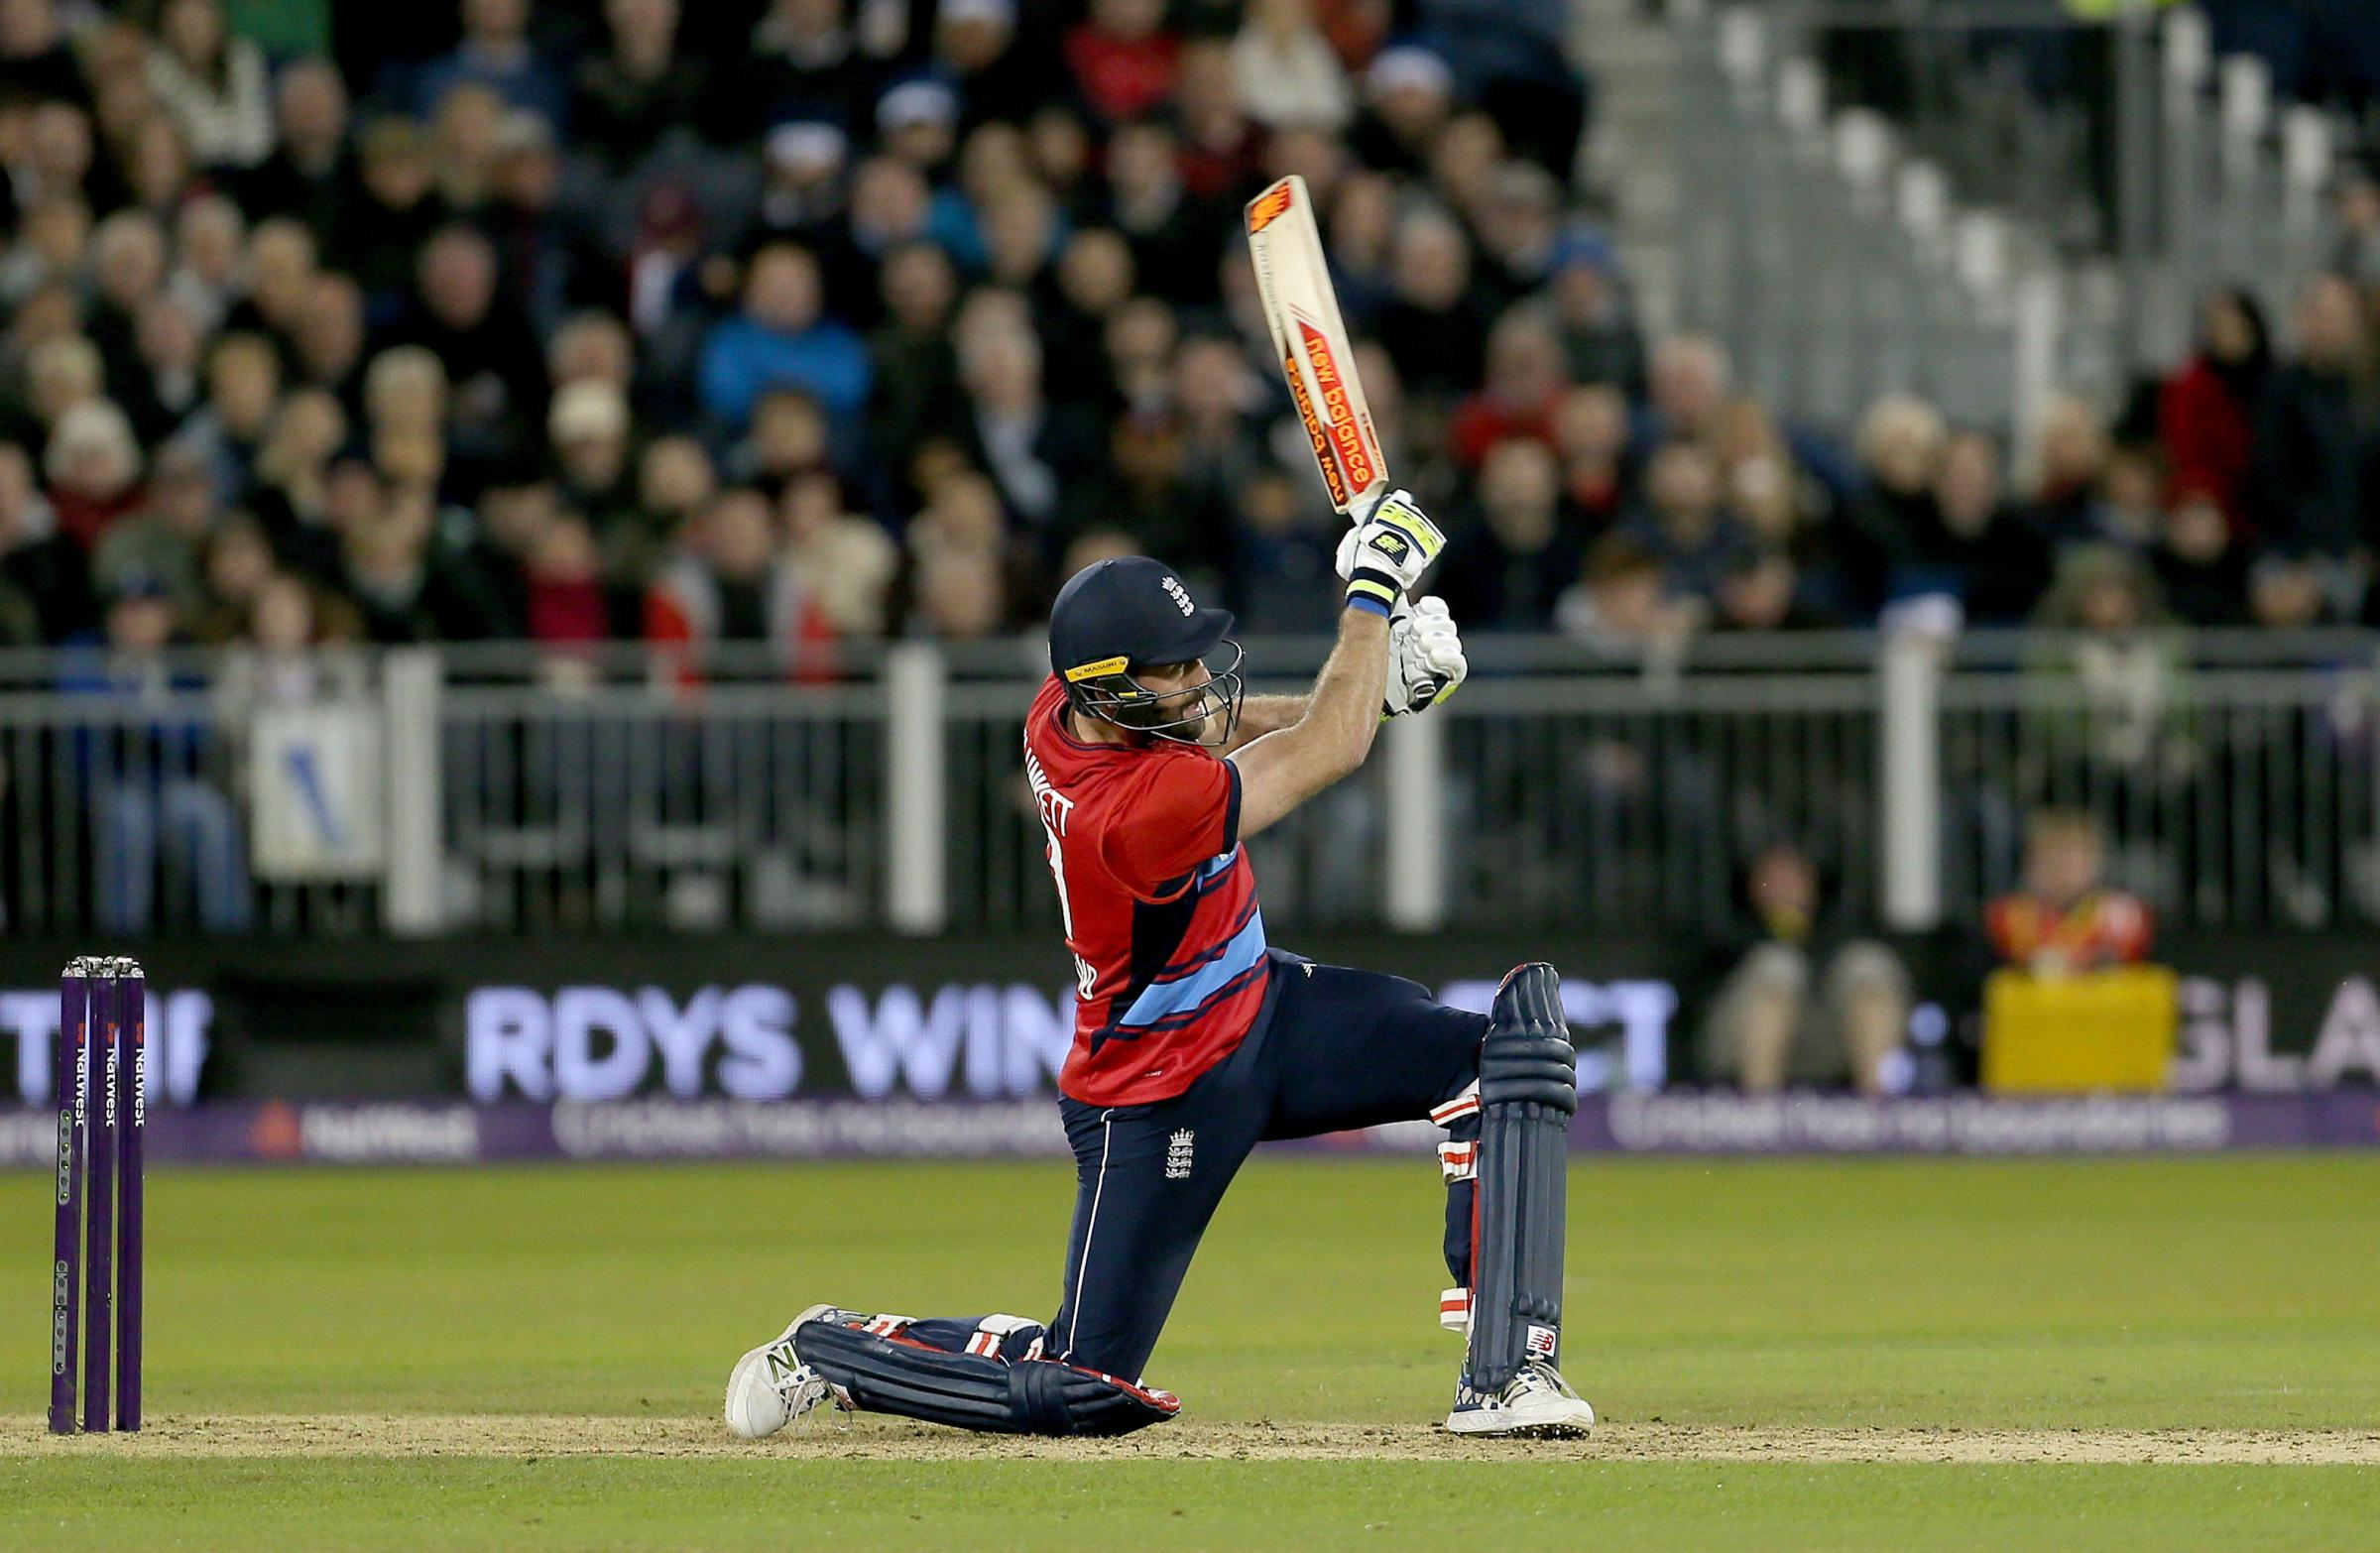 CRICKET: England are taking on Australia at the Emirates Riverside in Chester-le-Street on Thursday. Liam Plunkett is pictured in bat during the NatWest T20 match last September. Picture: RICHARD SELLERS